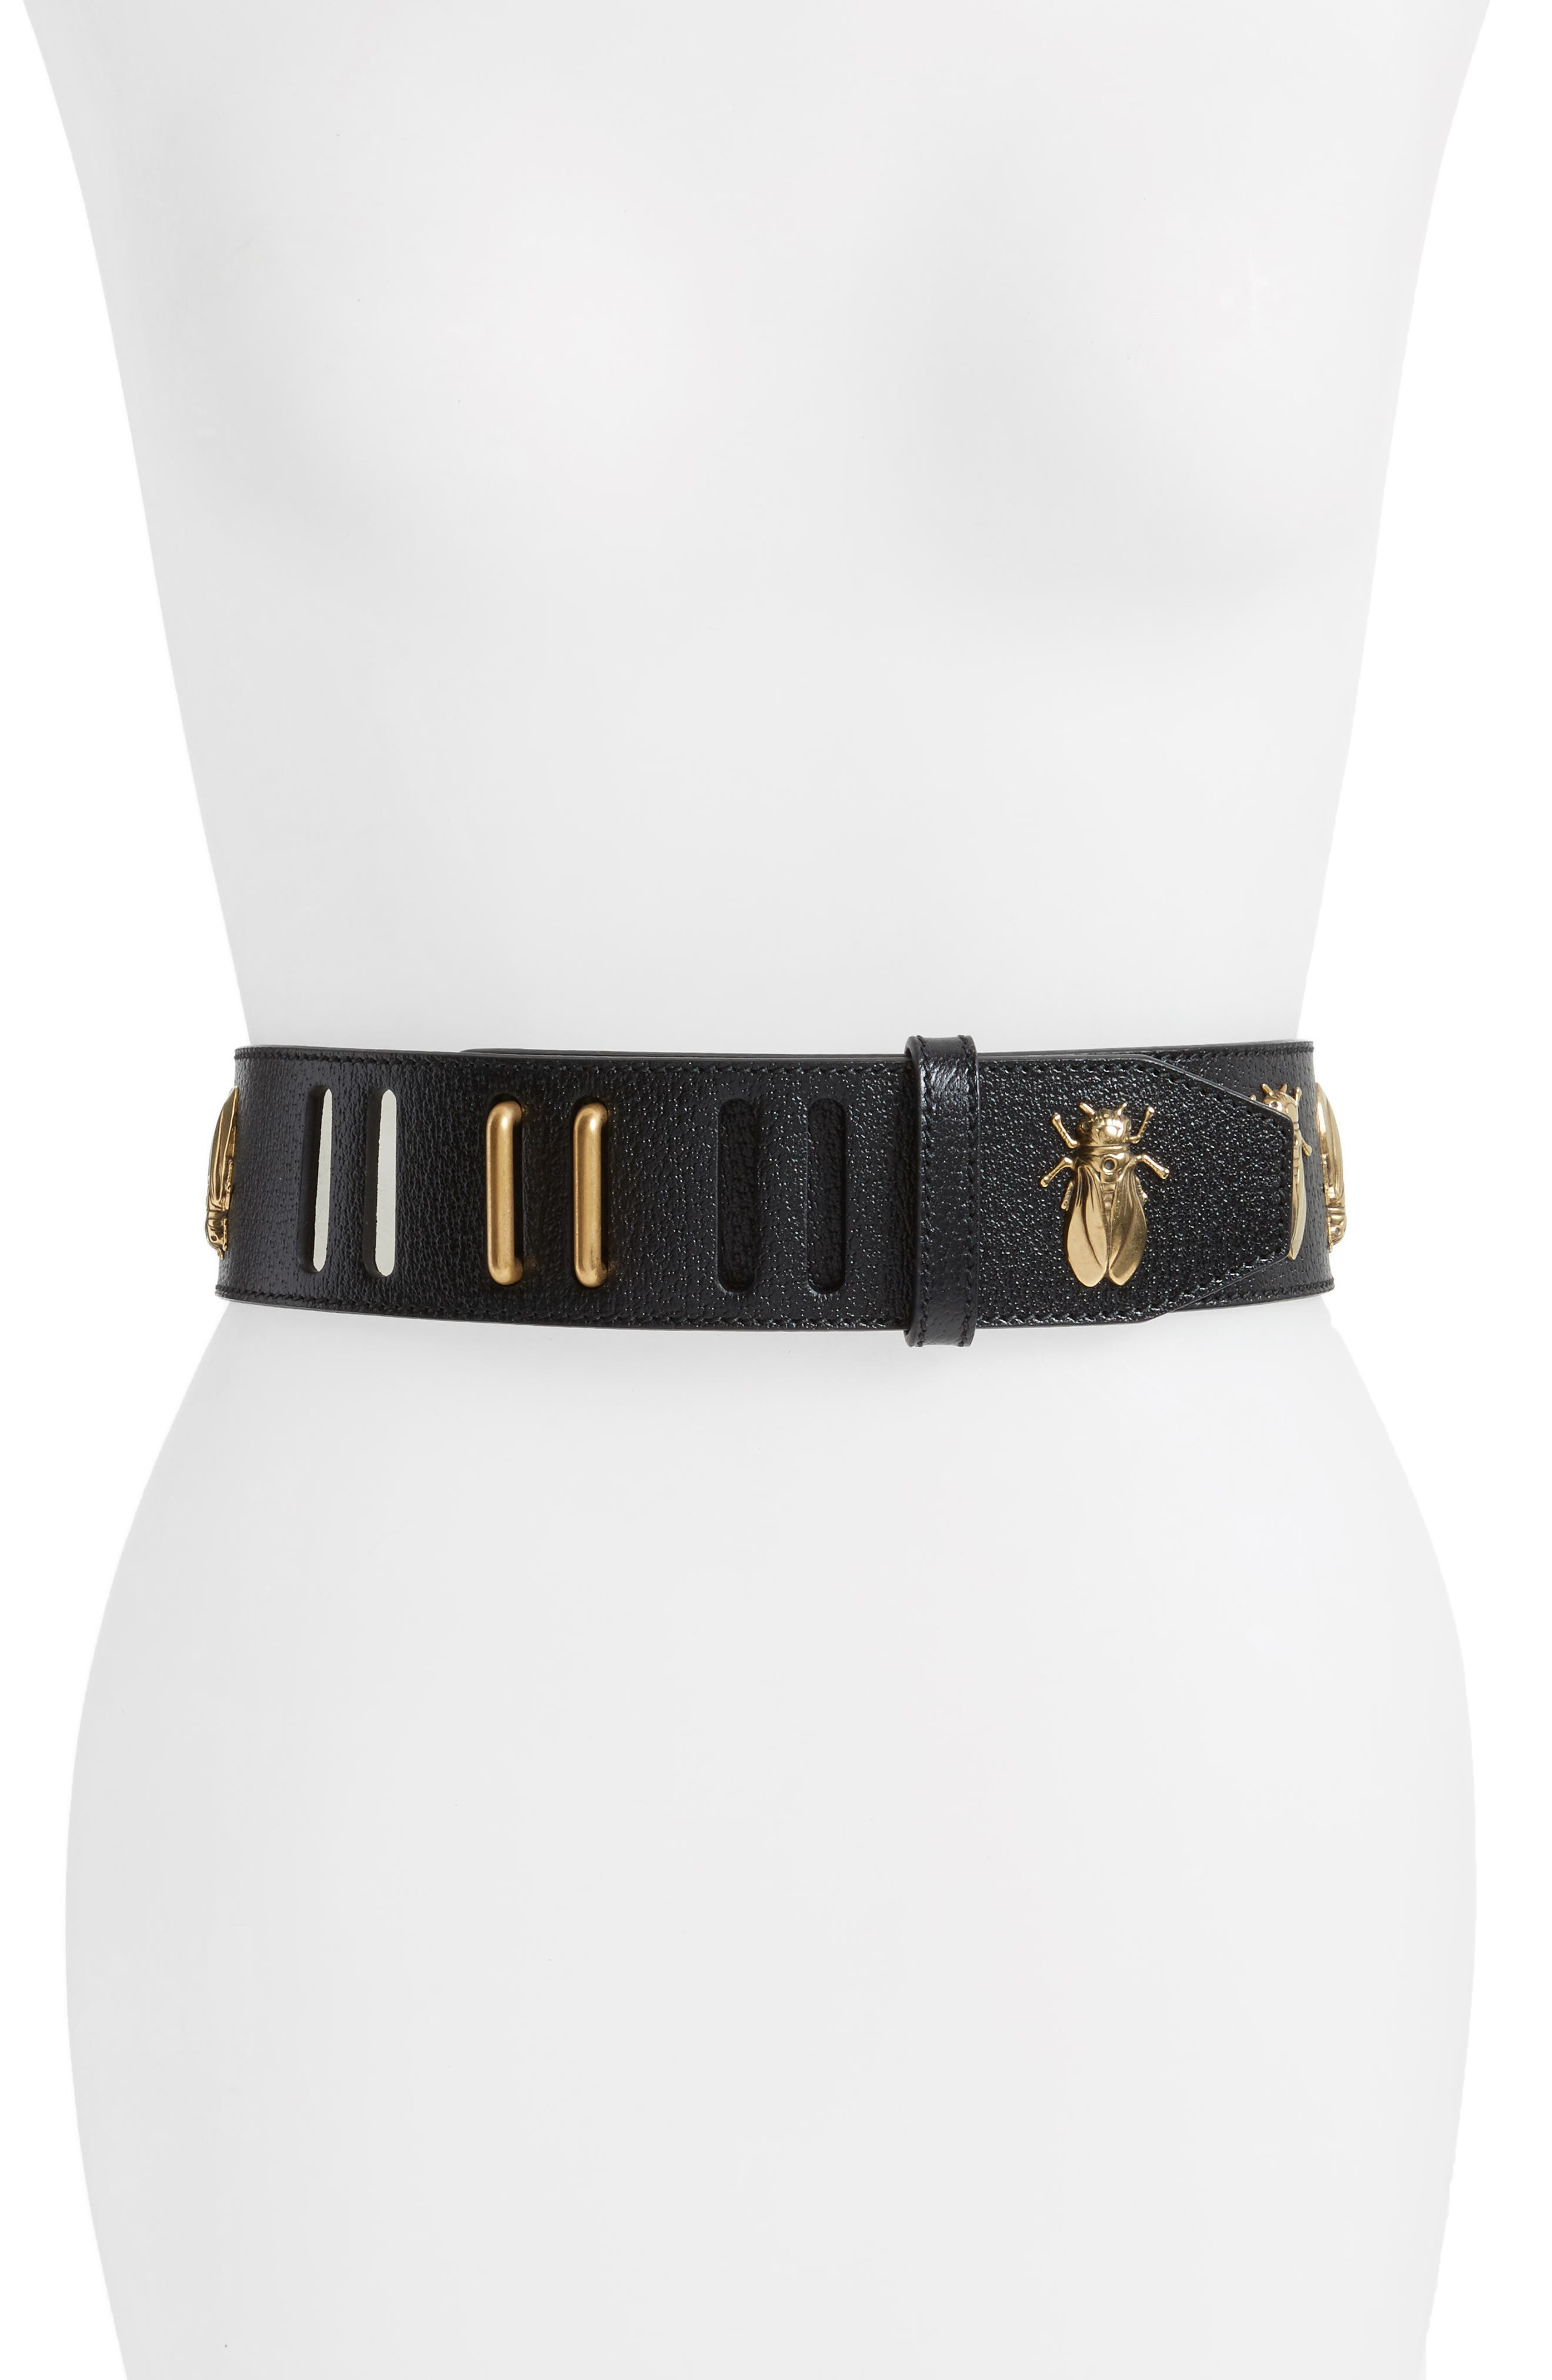 Gucci Bees Leather Belt